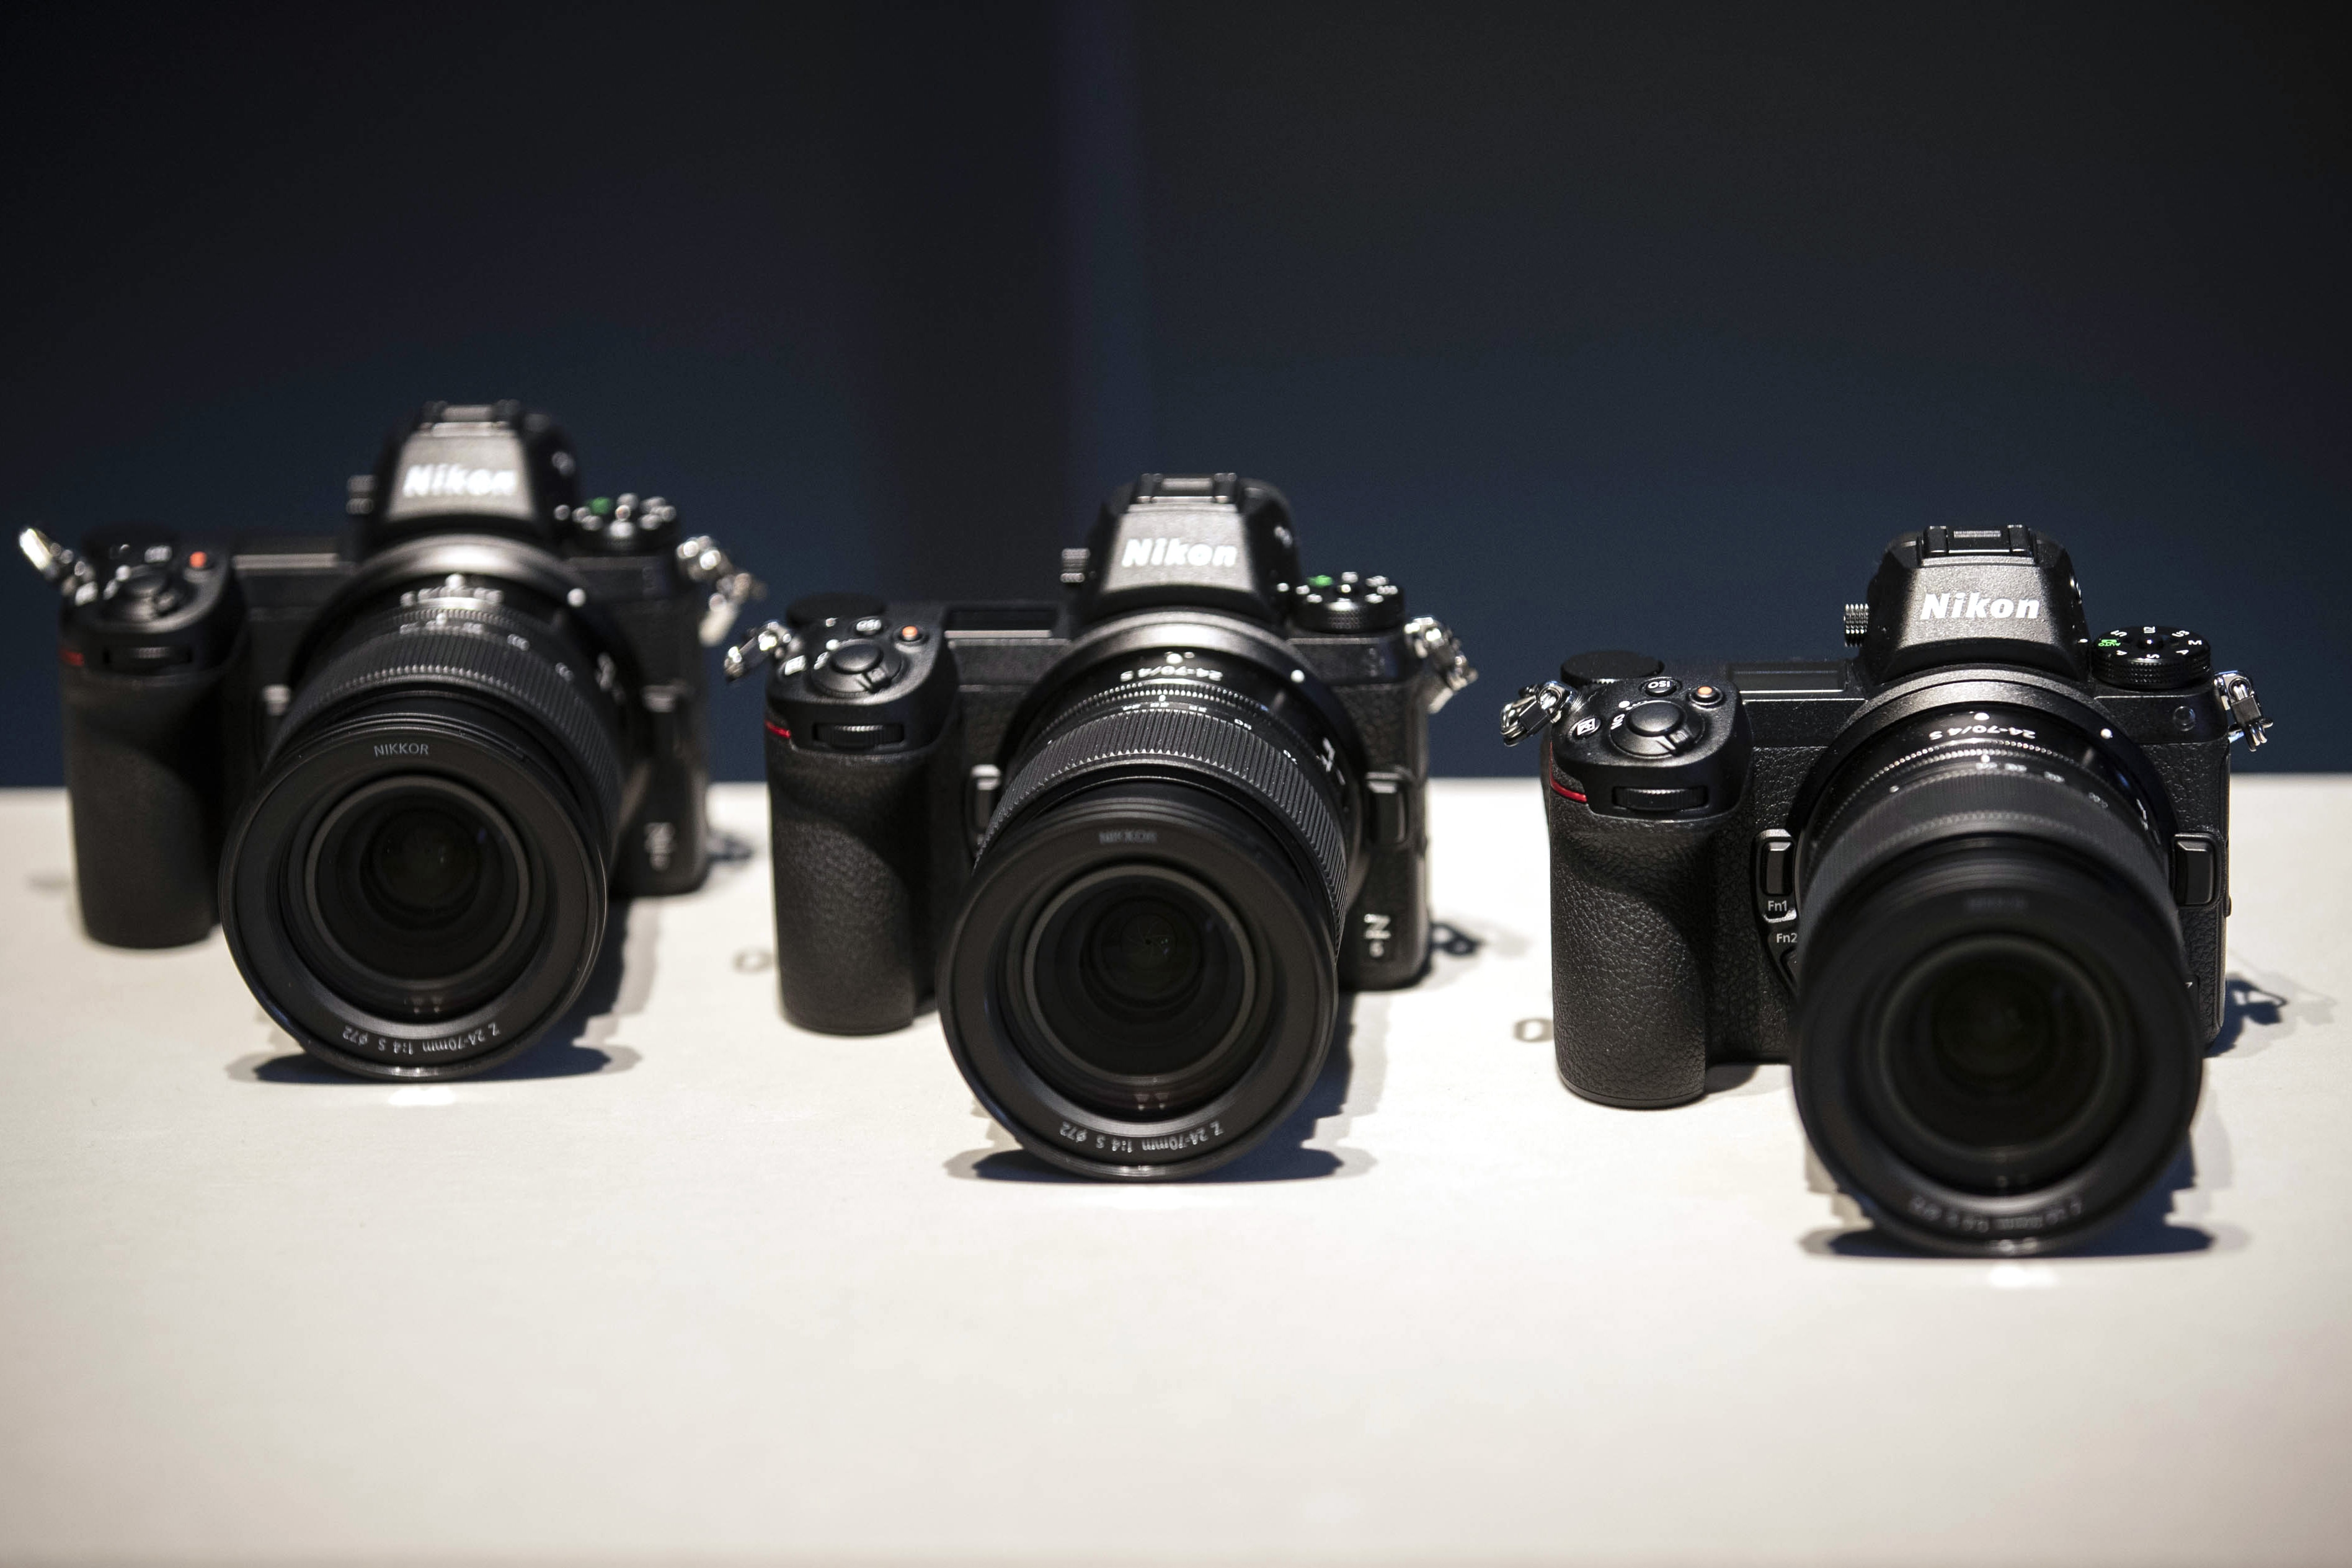 Nikon Takes on Sony With Its First Full-Frame Mirrorless Camera